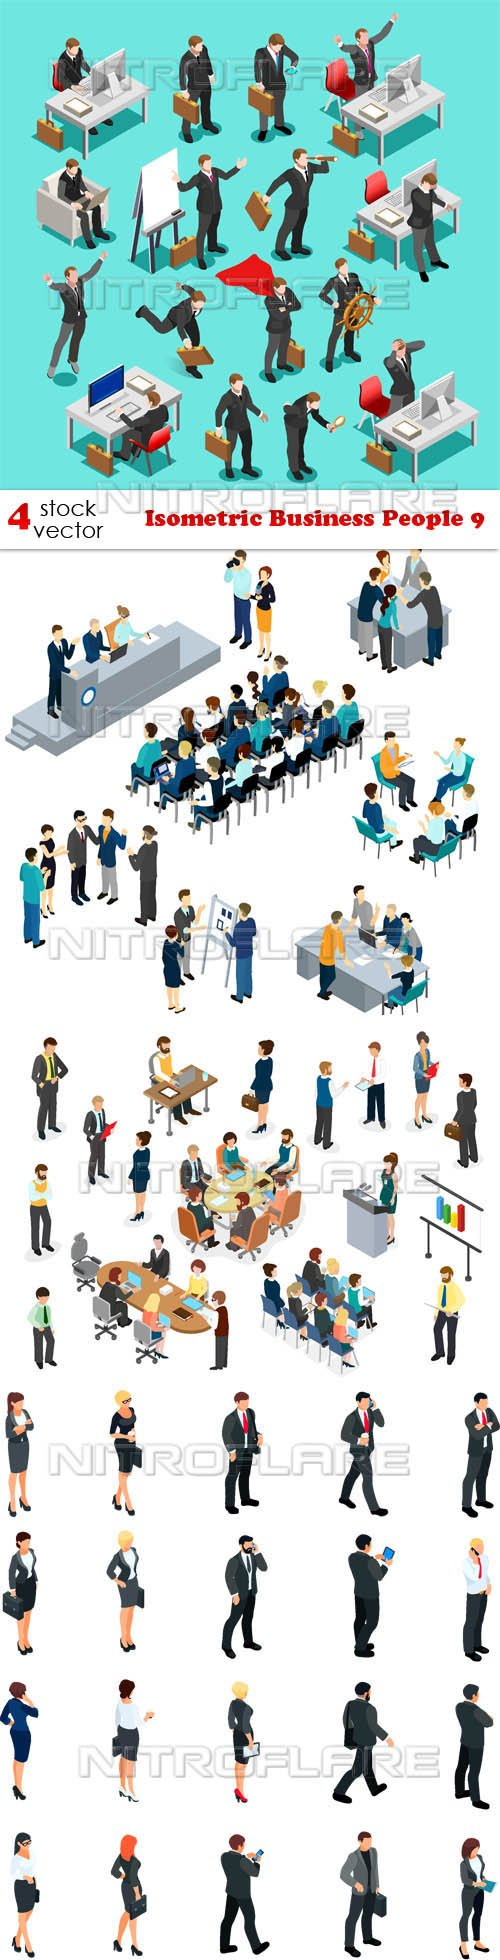 Vectors - Isometric Business People 9